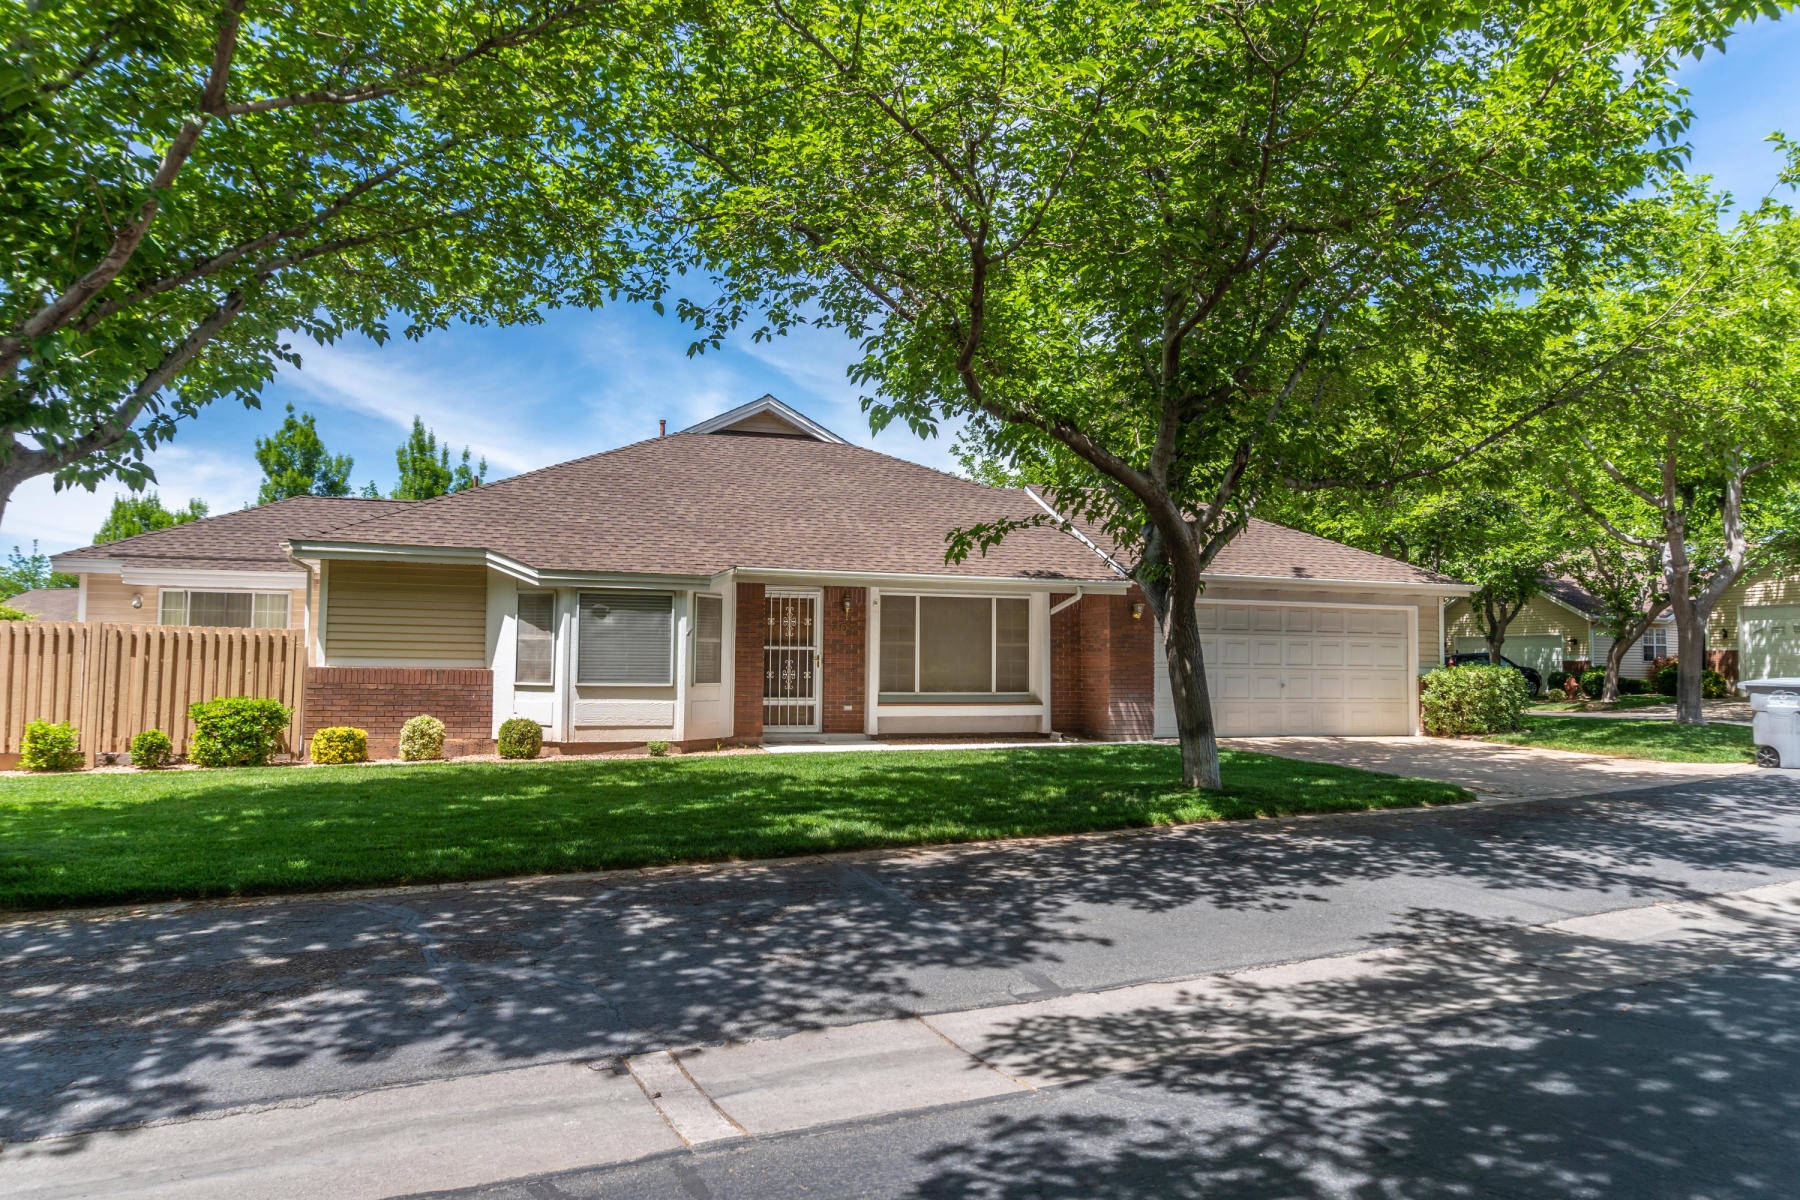 845 N Valley View Drive #707, St George in Washington County, UT 84770 Home for Sale